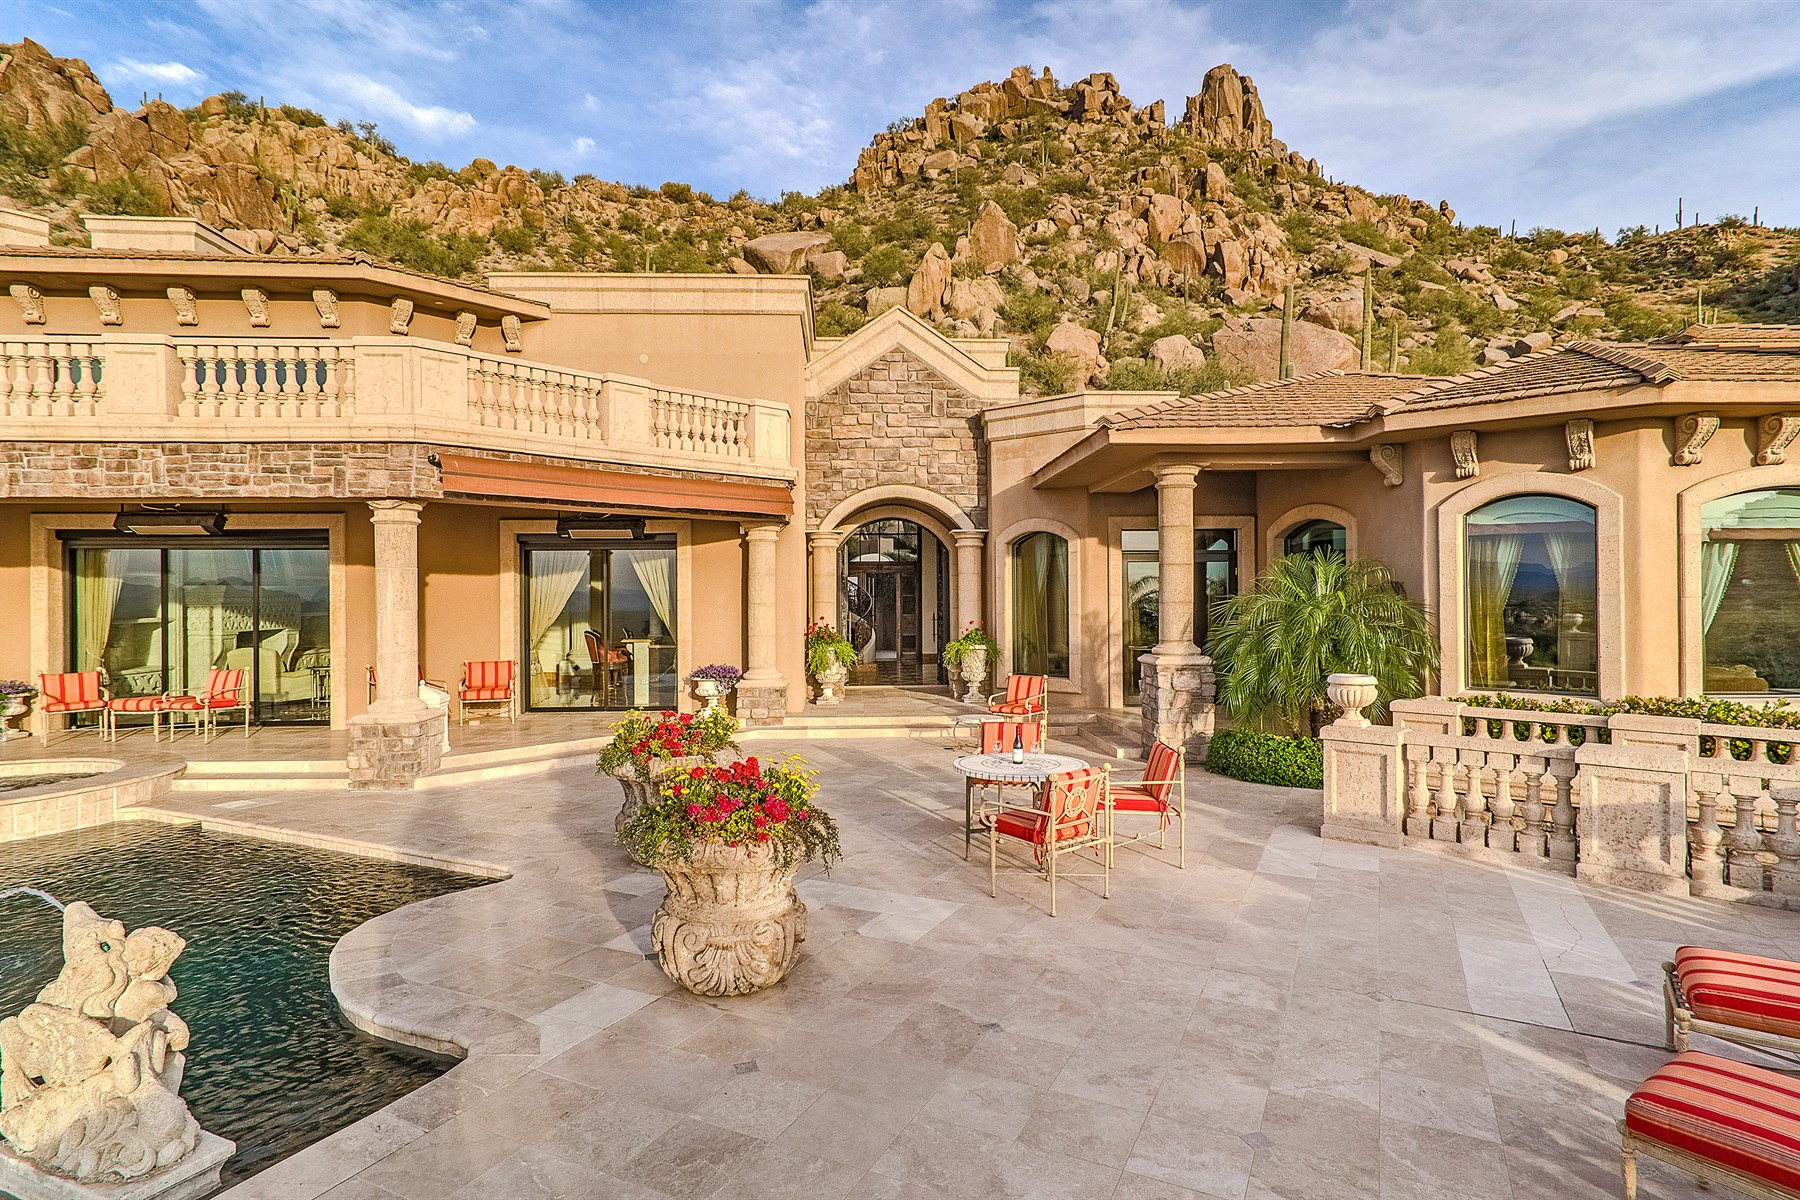 Casa Unifamiliar por un Venta en Glorious views emanate from this hillside estate in Estancia 26905 N 98th Way Scottsdale, Arizona, 85262 Estados Unidos